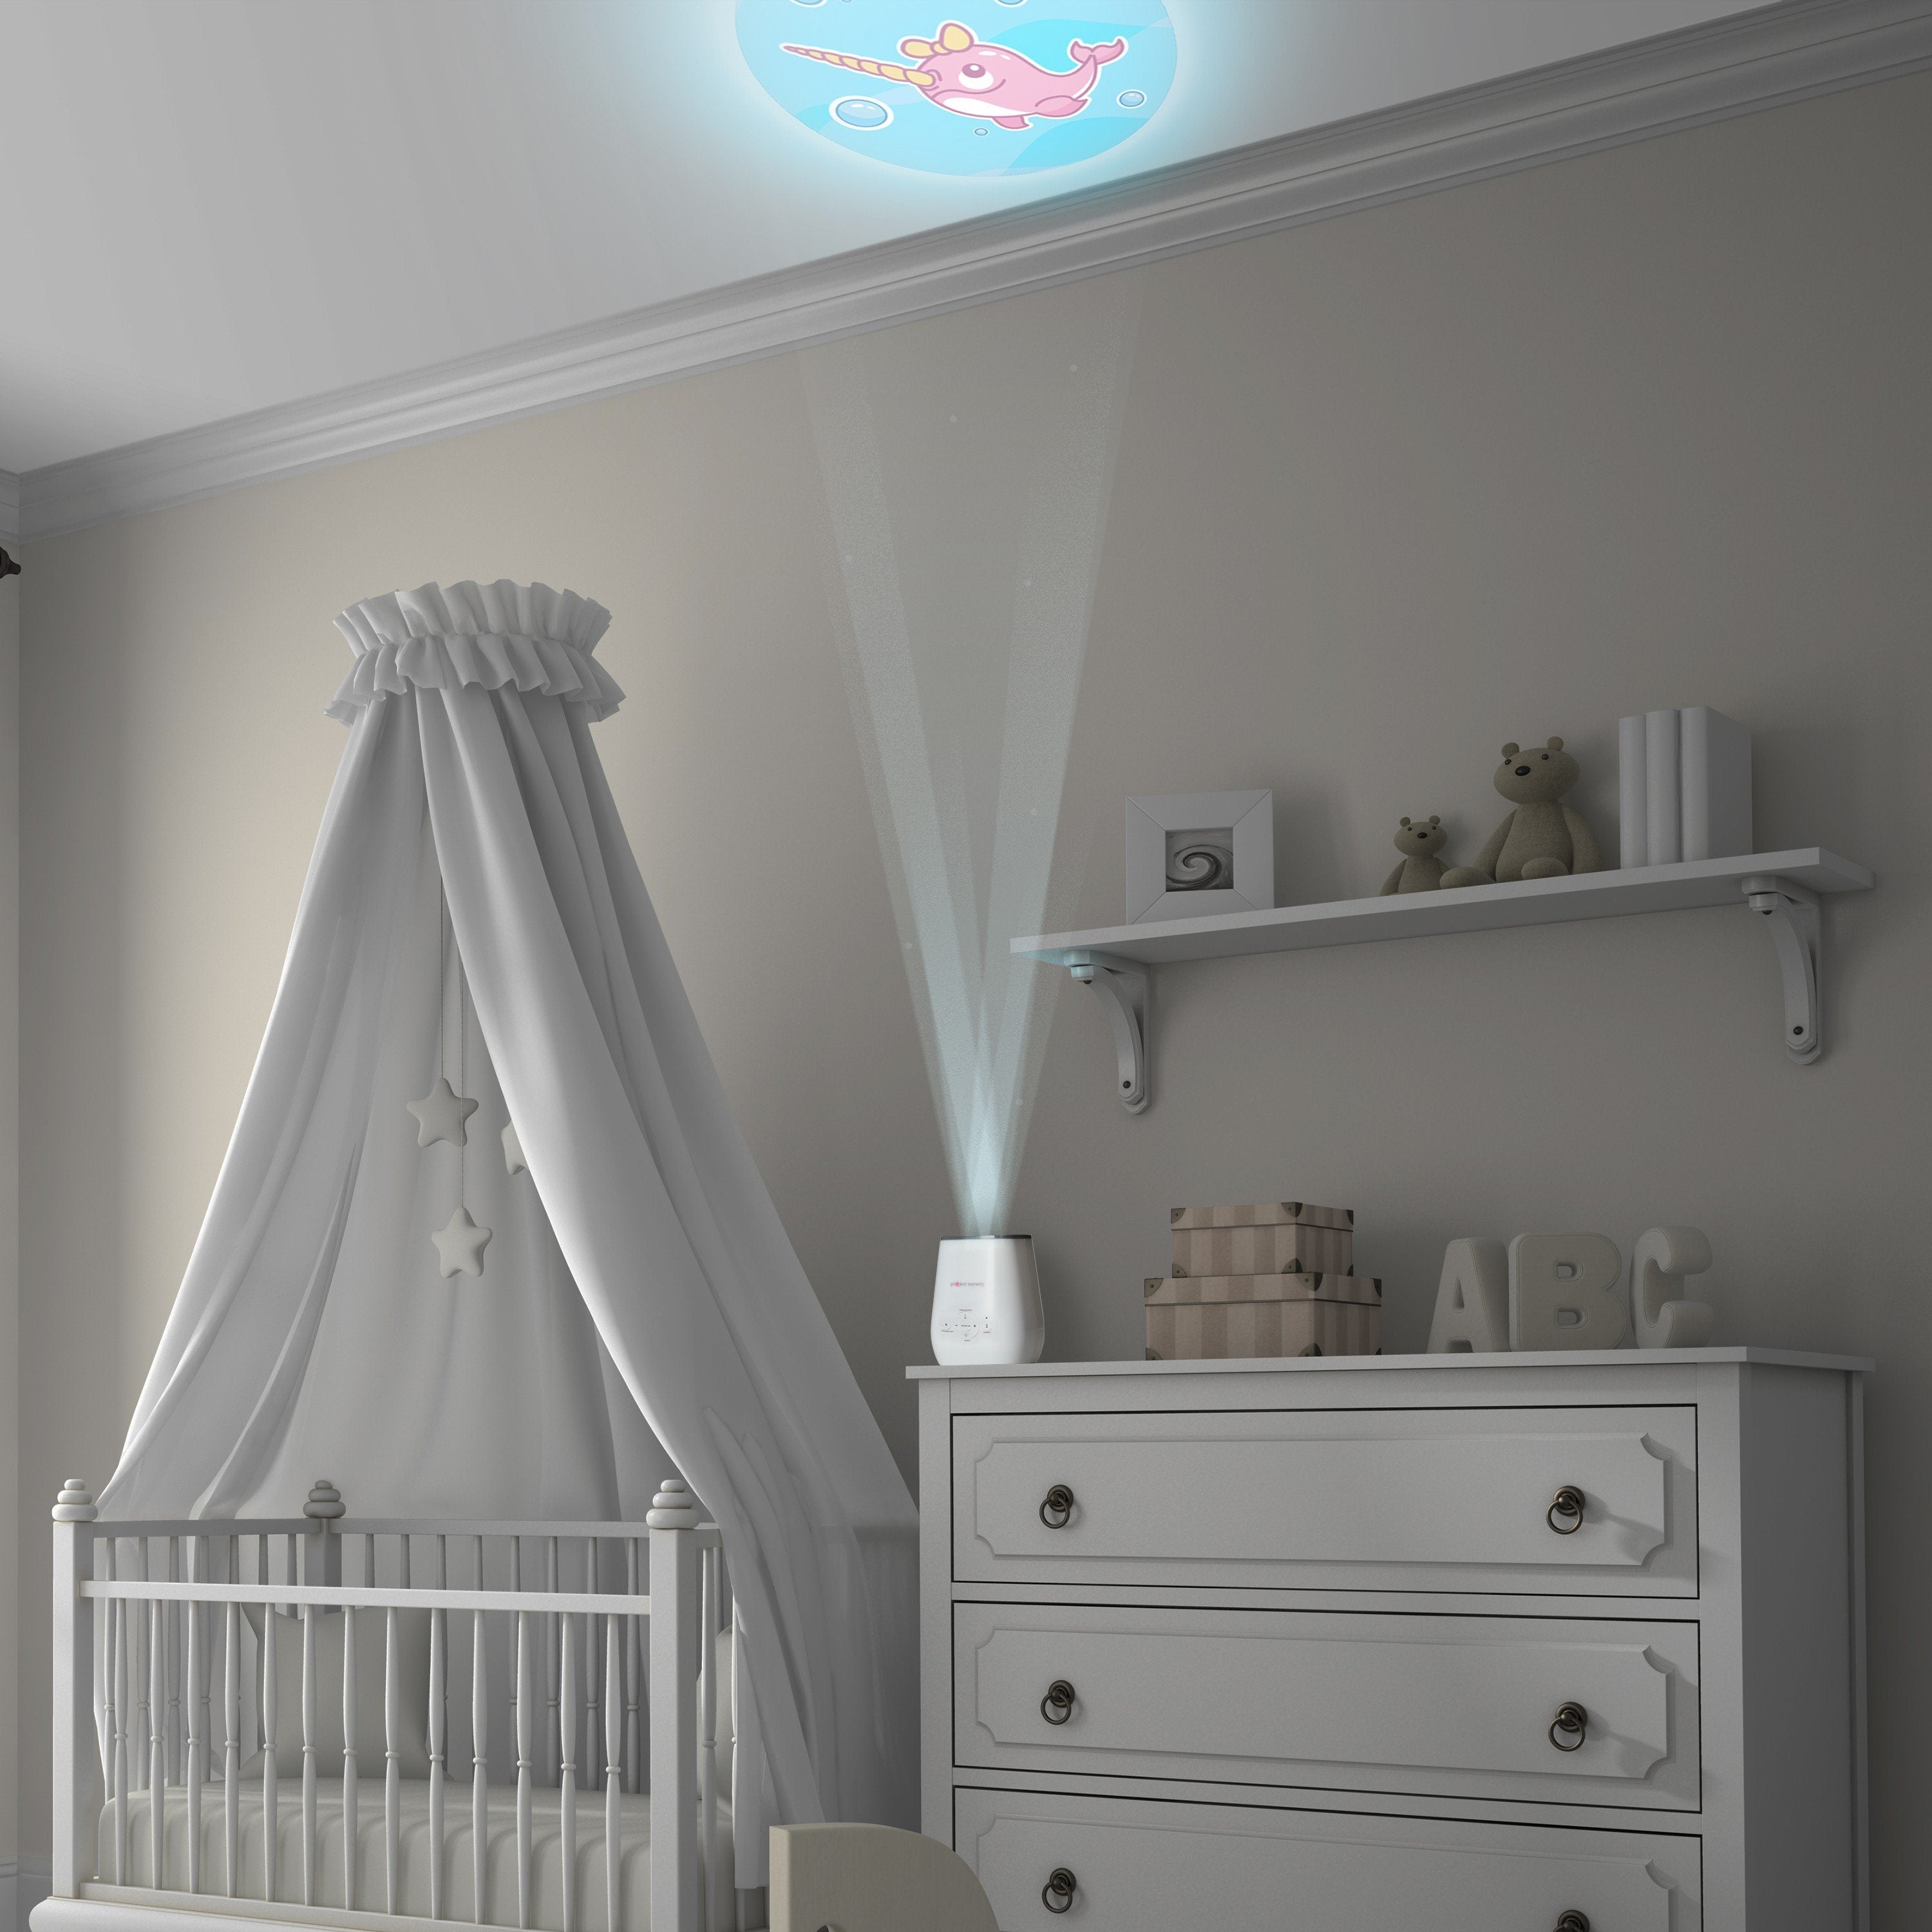 Project Nursery Soothing Projector Nightlight + Timer - Project Nursery